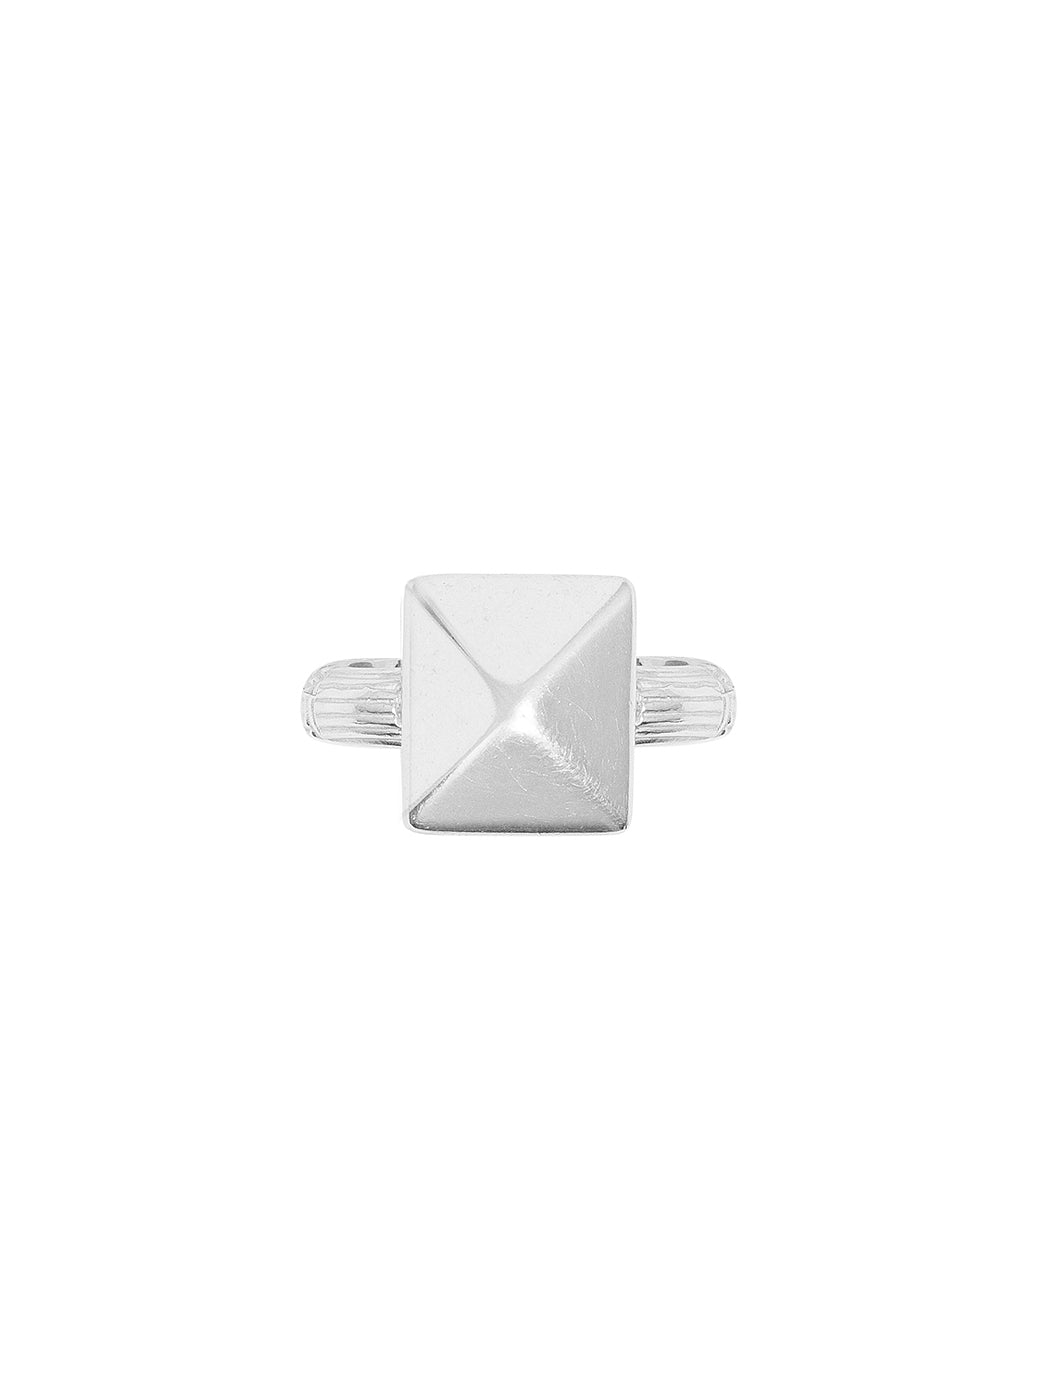 Fiorina Jewellery Pyramid Ring Top